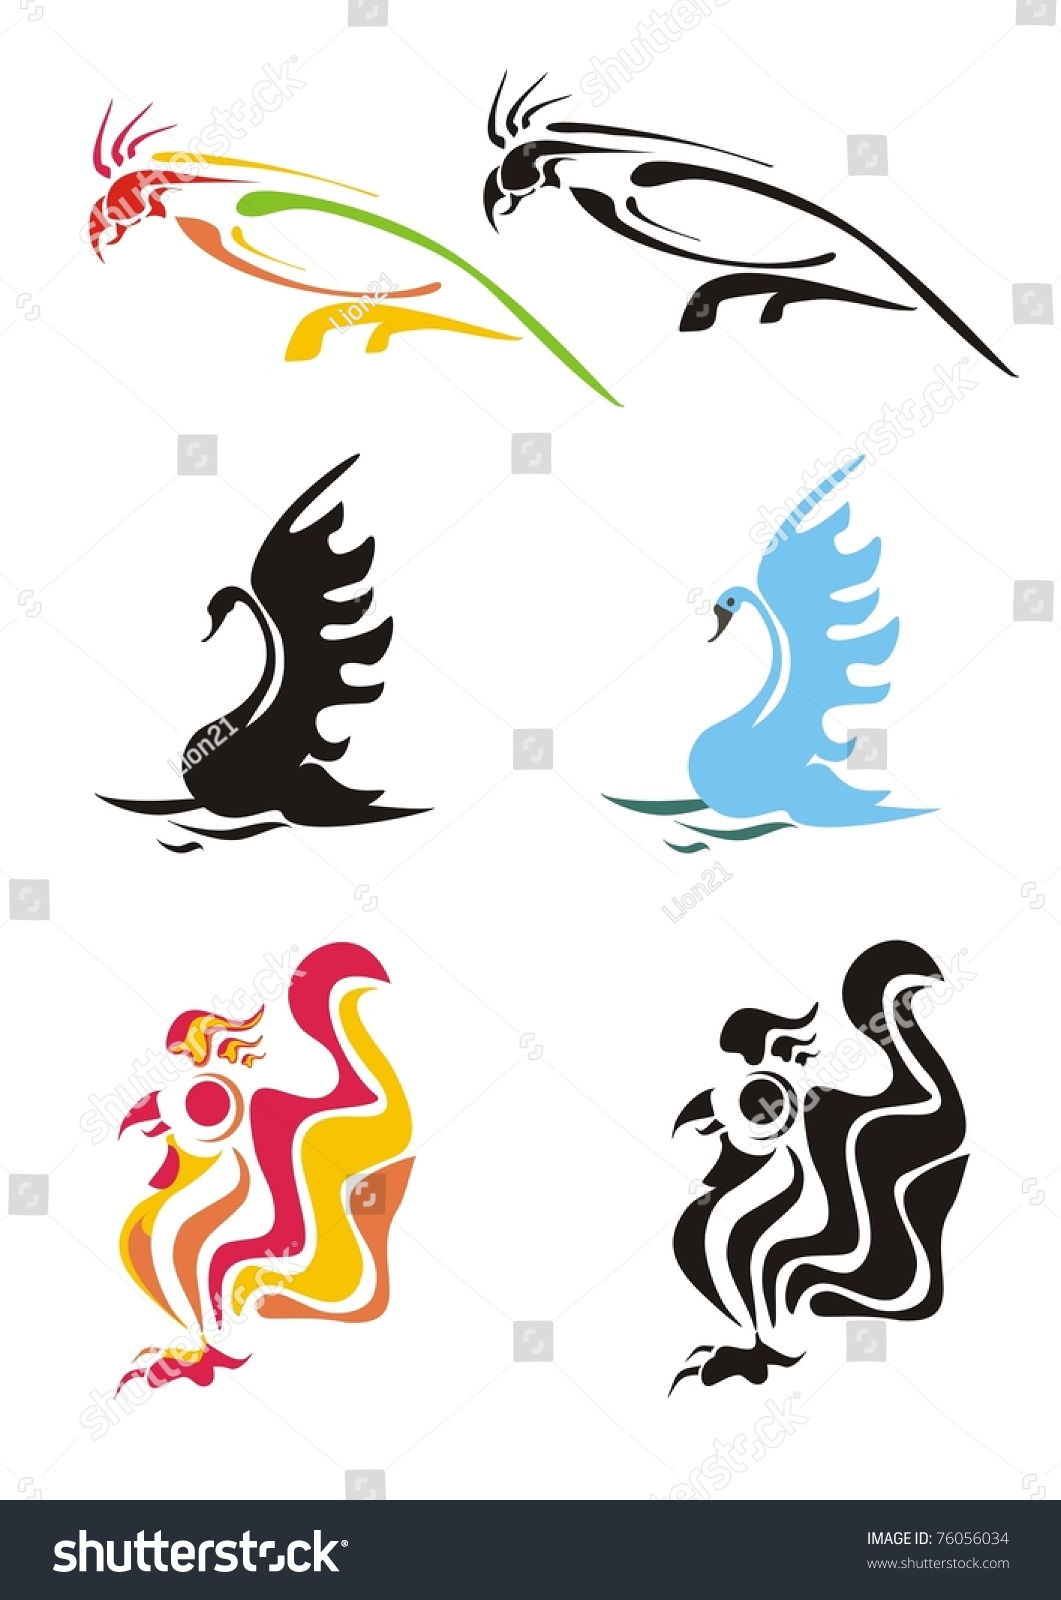 Dragon vector sign stock vector 313643336 shutterstock - Stylization Of A Parrot Swan And Cock Black And Color Vector Images Of Birds